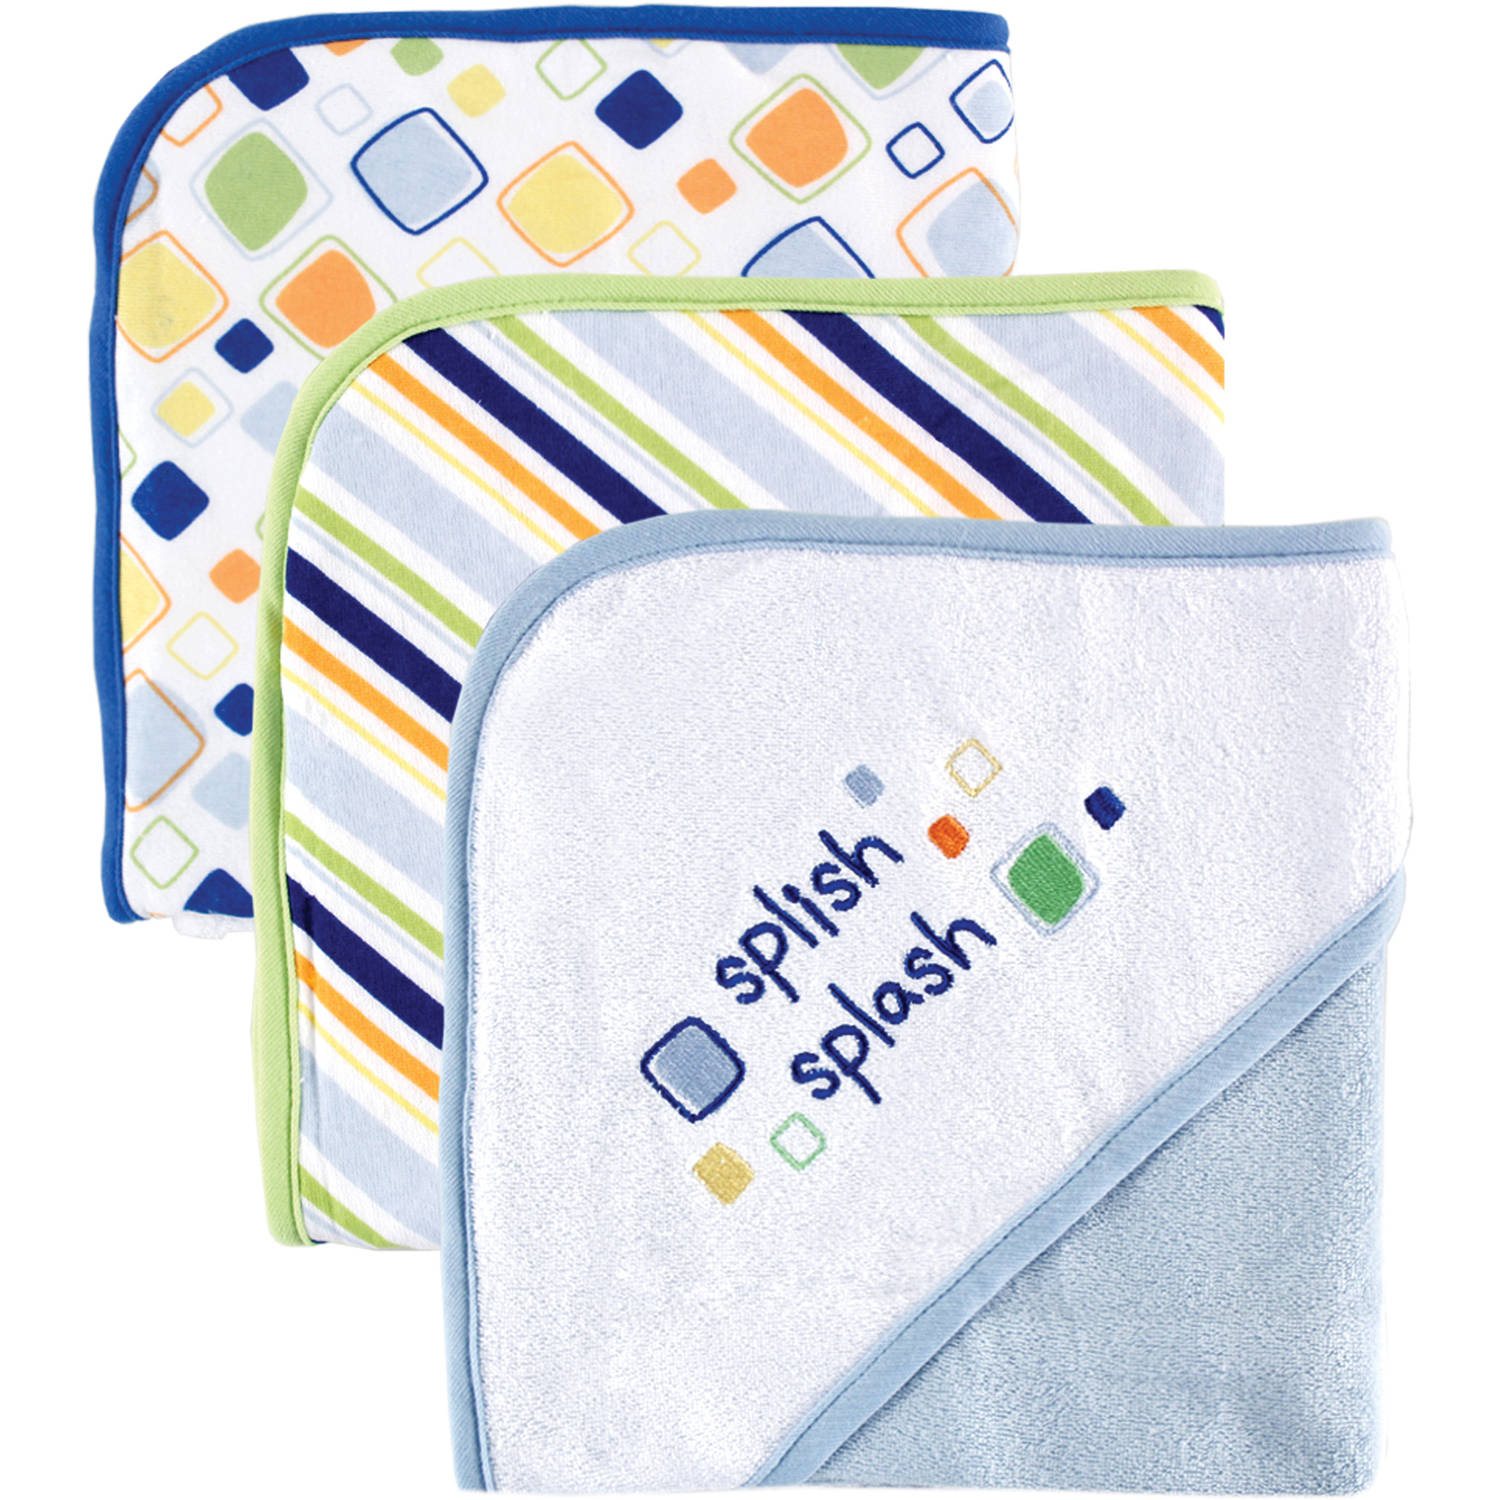 Luvable Friends Hooded Towels, 3pk, Embroidery, Multiple Colors